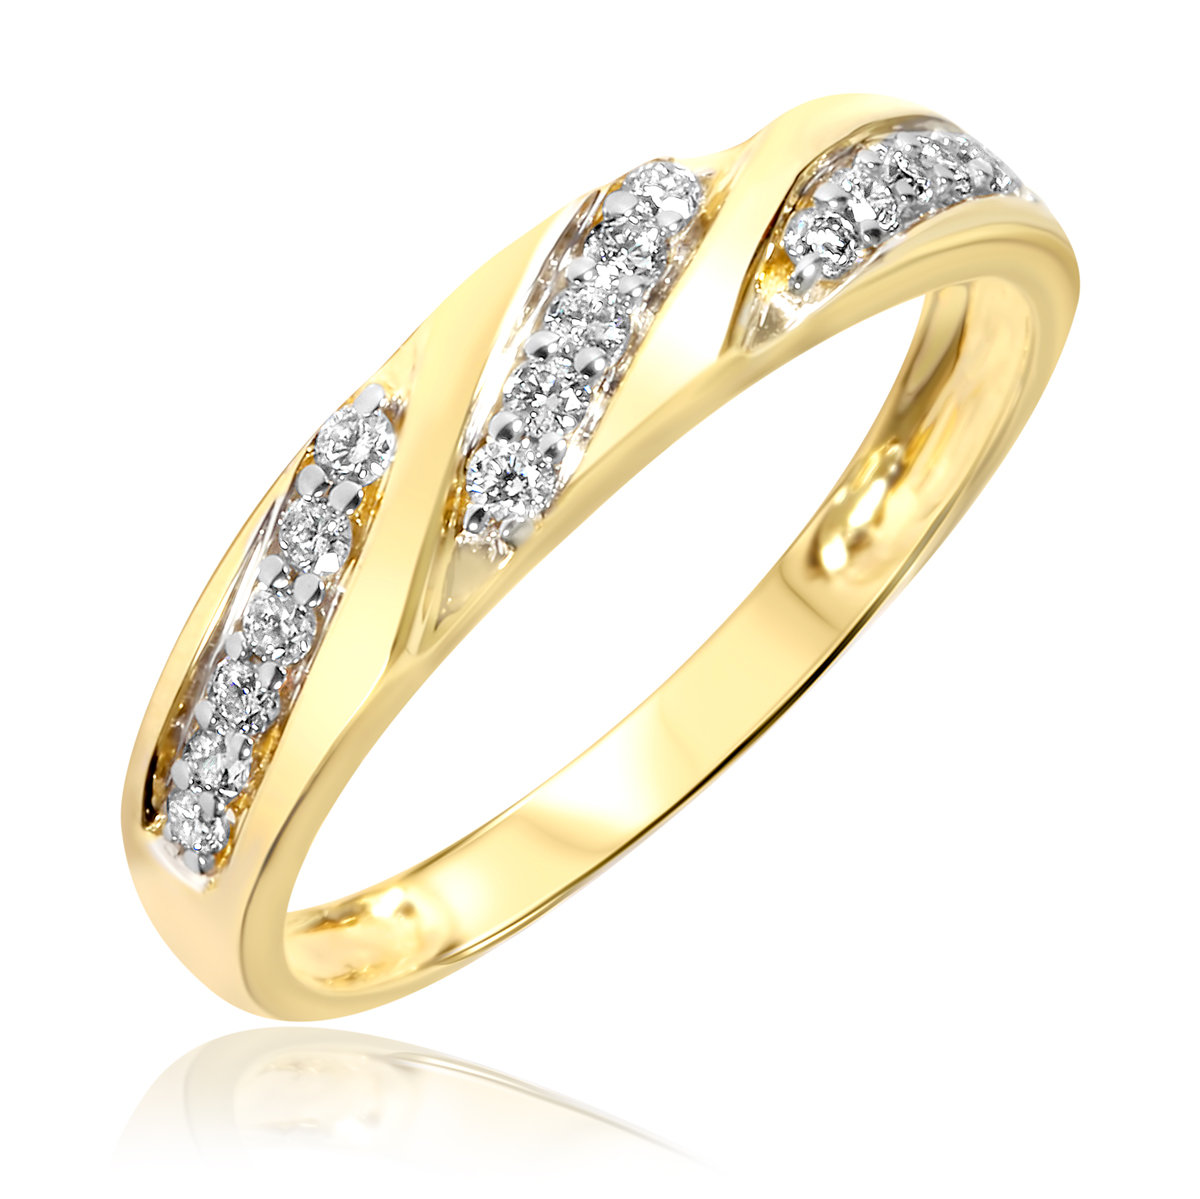 diamond wedding bands for women cheap womens wedding rings http idealwedding info wp content uploads 05 solitaire engagement ring with diamond band